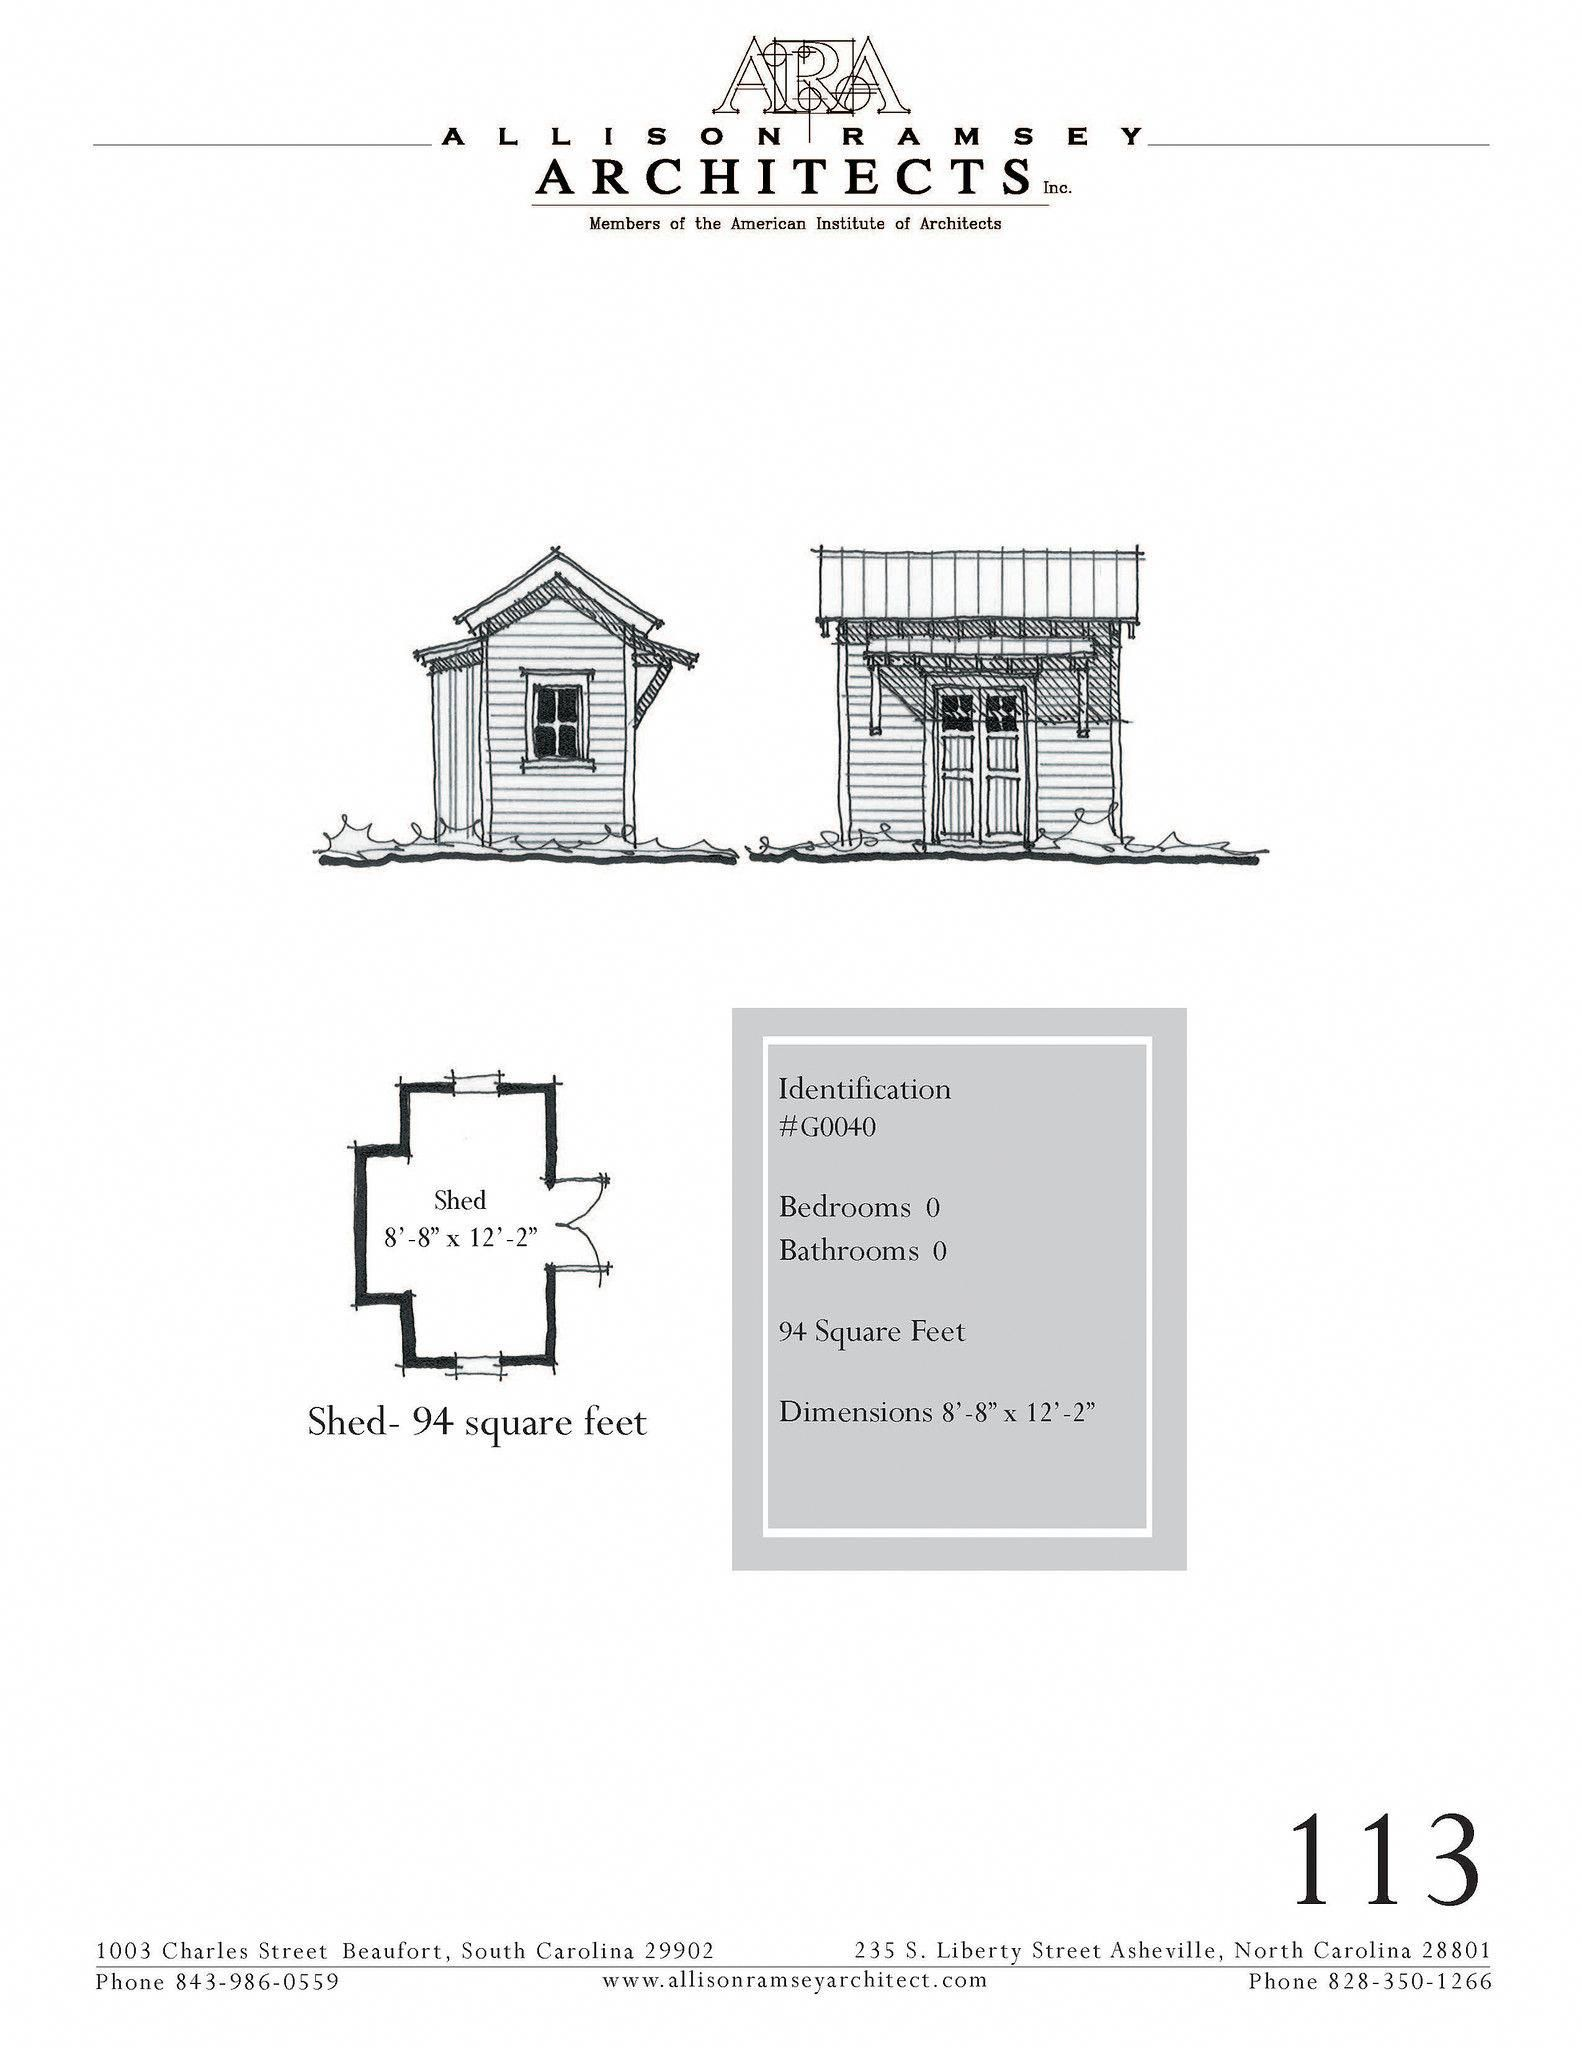 G0040 Is A Garden Shed The Overall Dimensions Are 8 8 X 12 2 Outbuildings Page 103 Howtobuildagardenshed Shed Shed Plans Build Your Own Shed